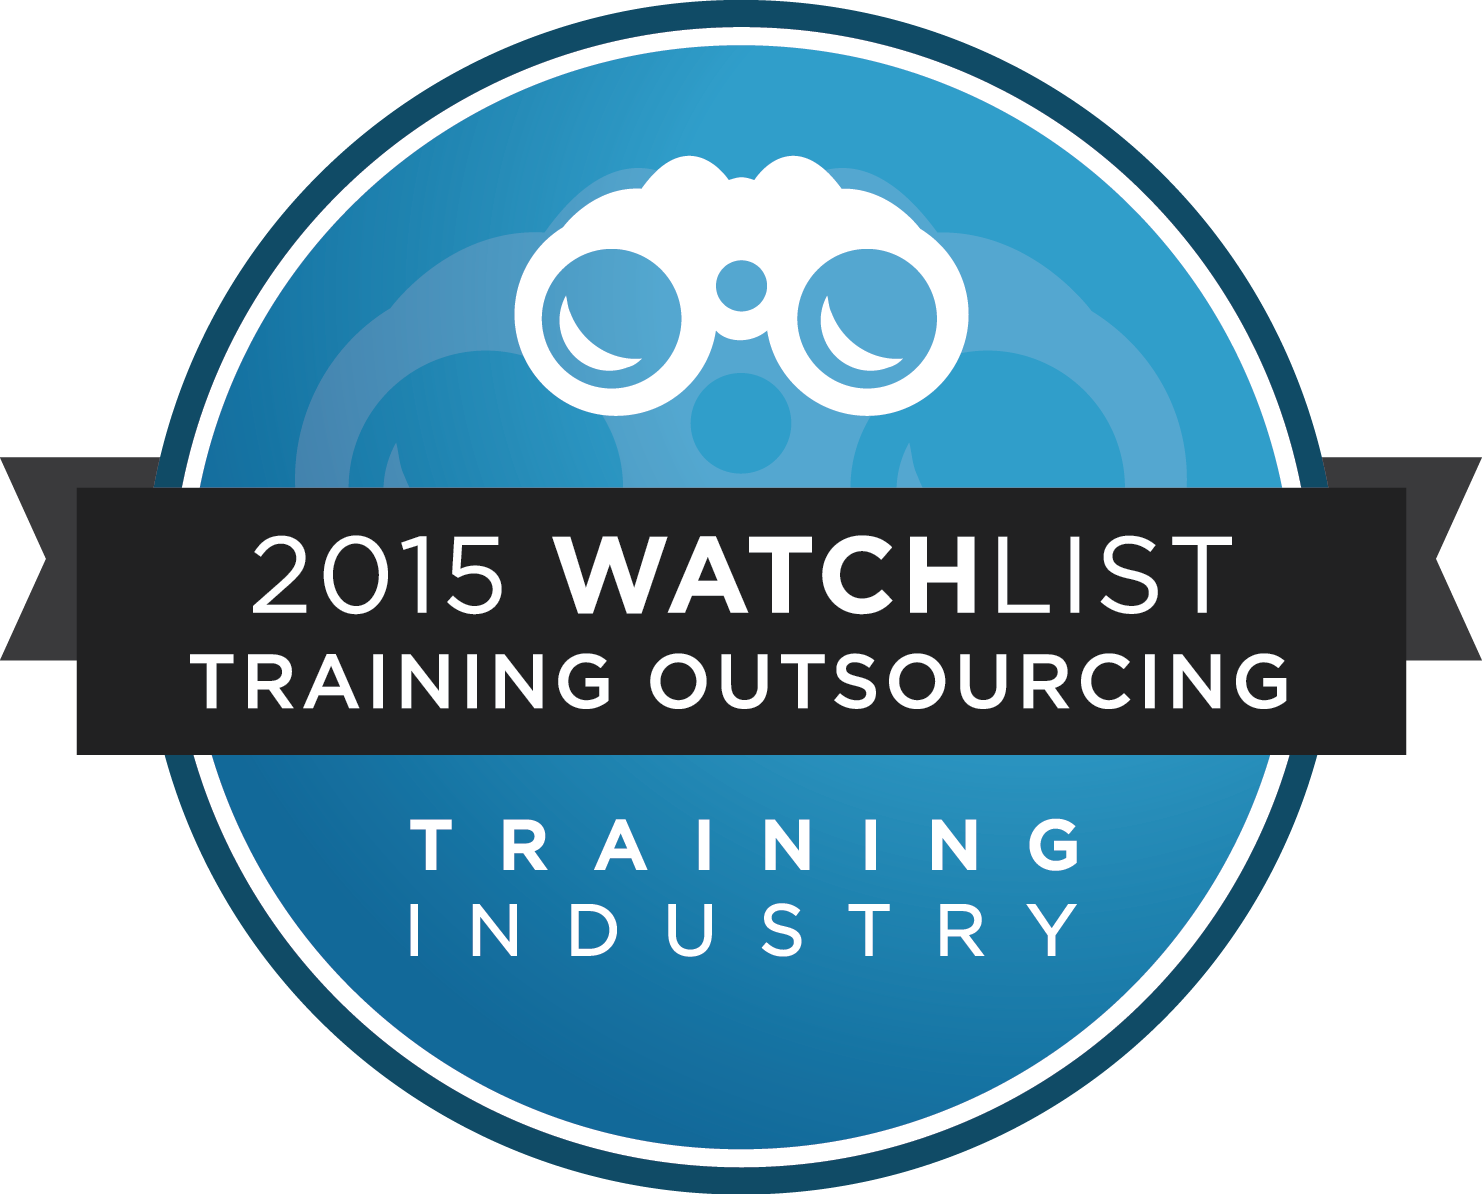 TI_watchlist_training_outsourcing